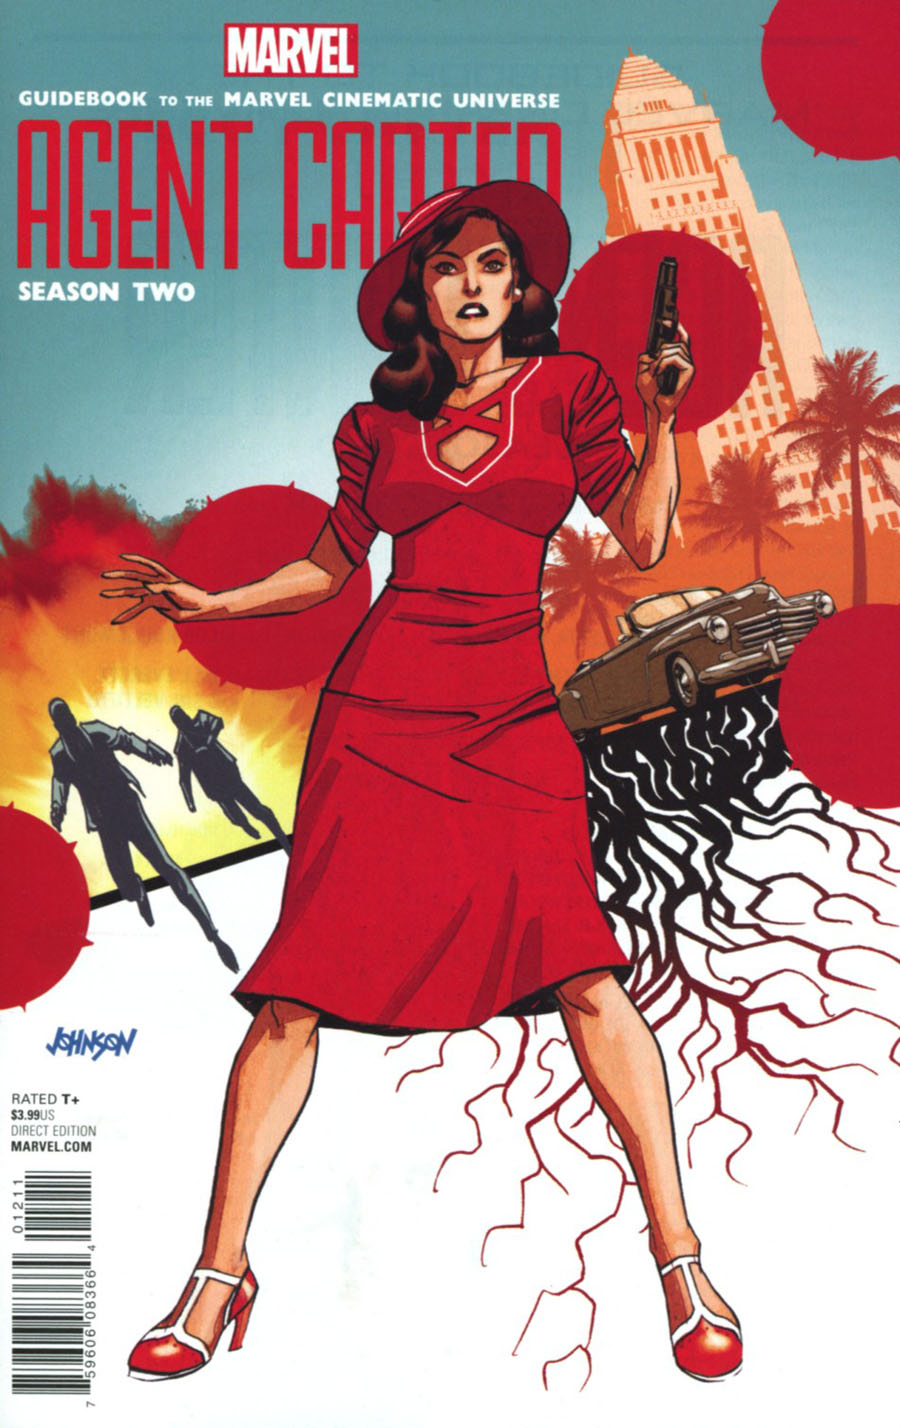 Guidebook To The Marvel Cinematic Universe Marvels Agents Of S.H.I.E.L.D. Season 3 / Marvels Agent Carter Season 2 #1